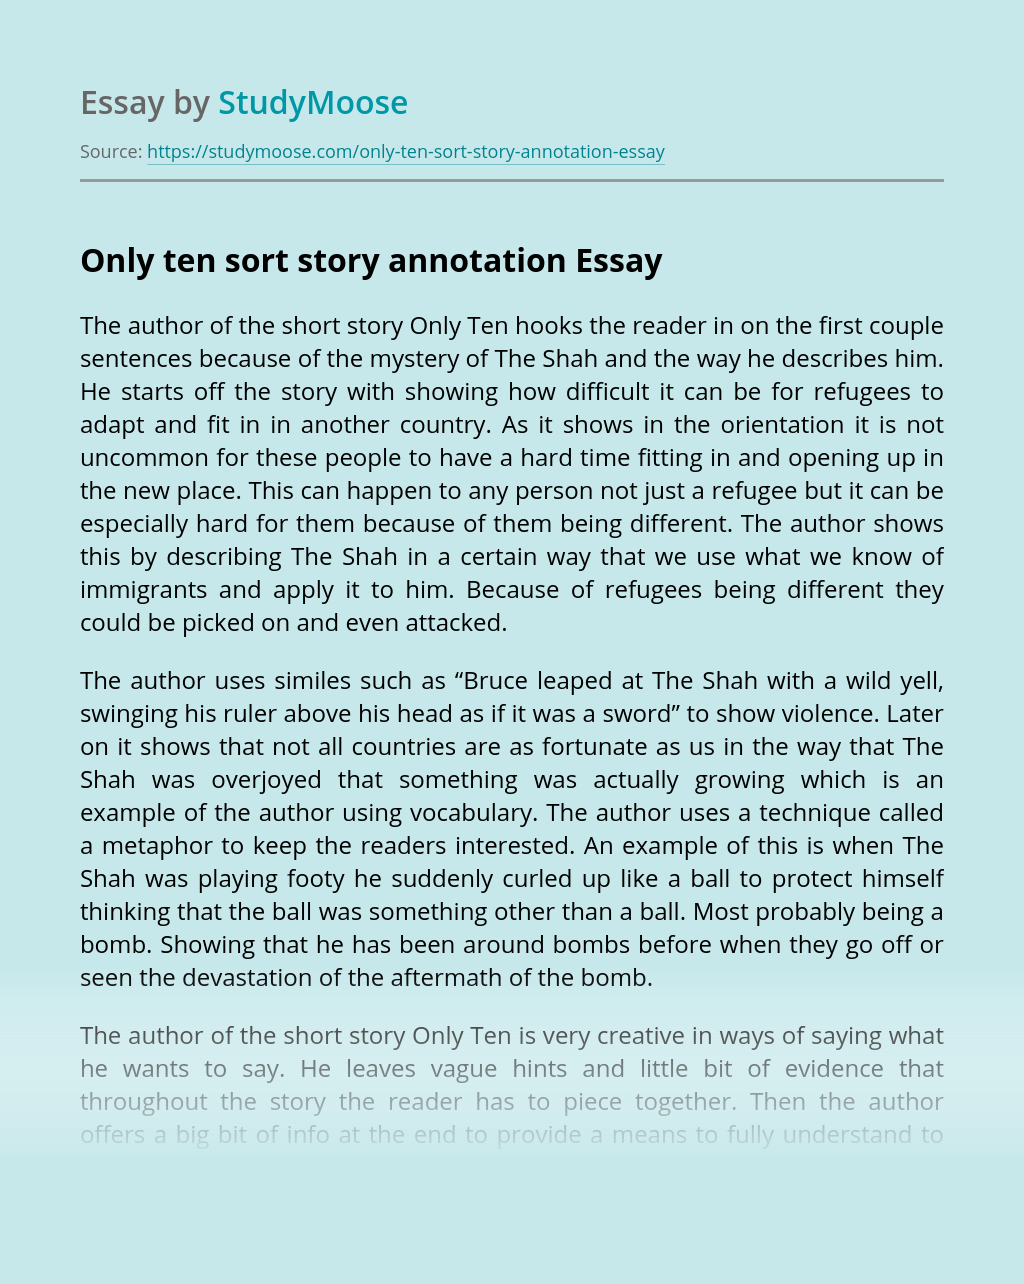 Only ten sort story annotation